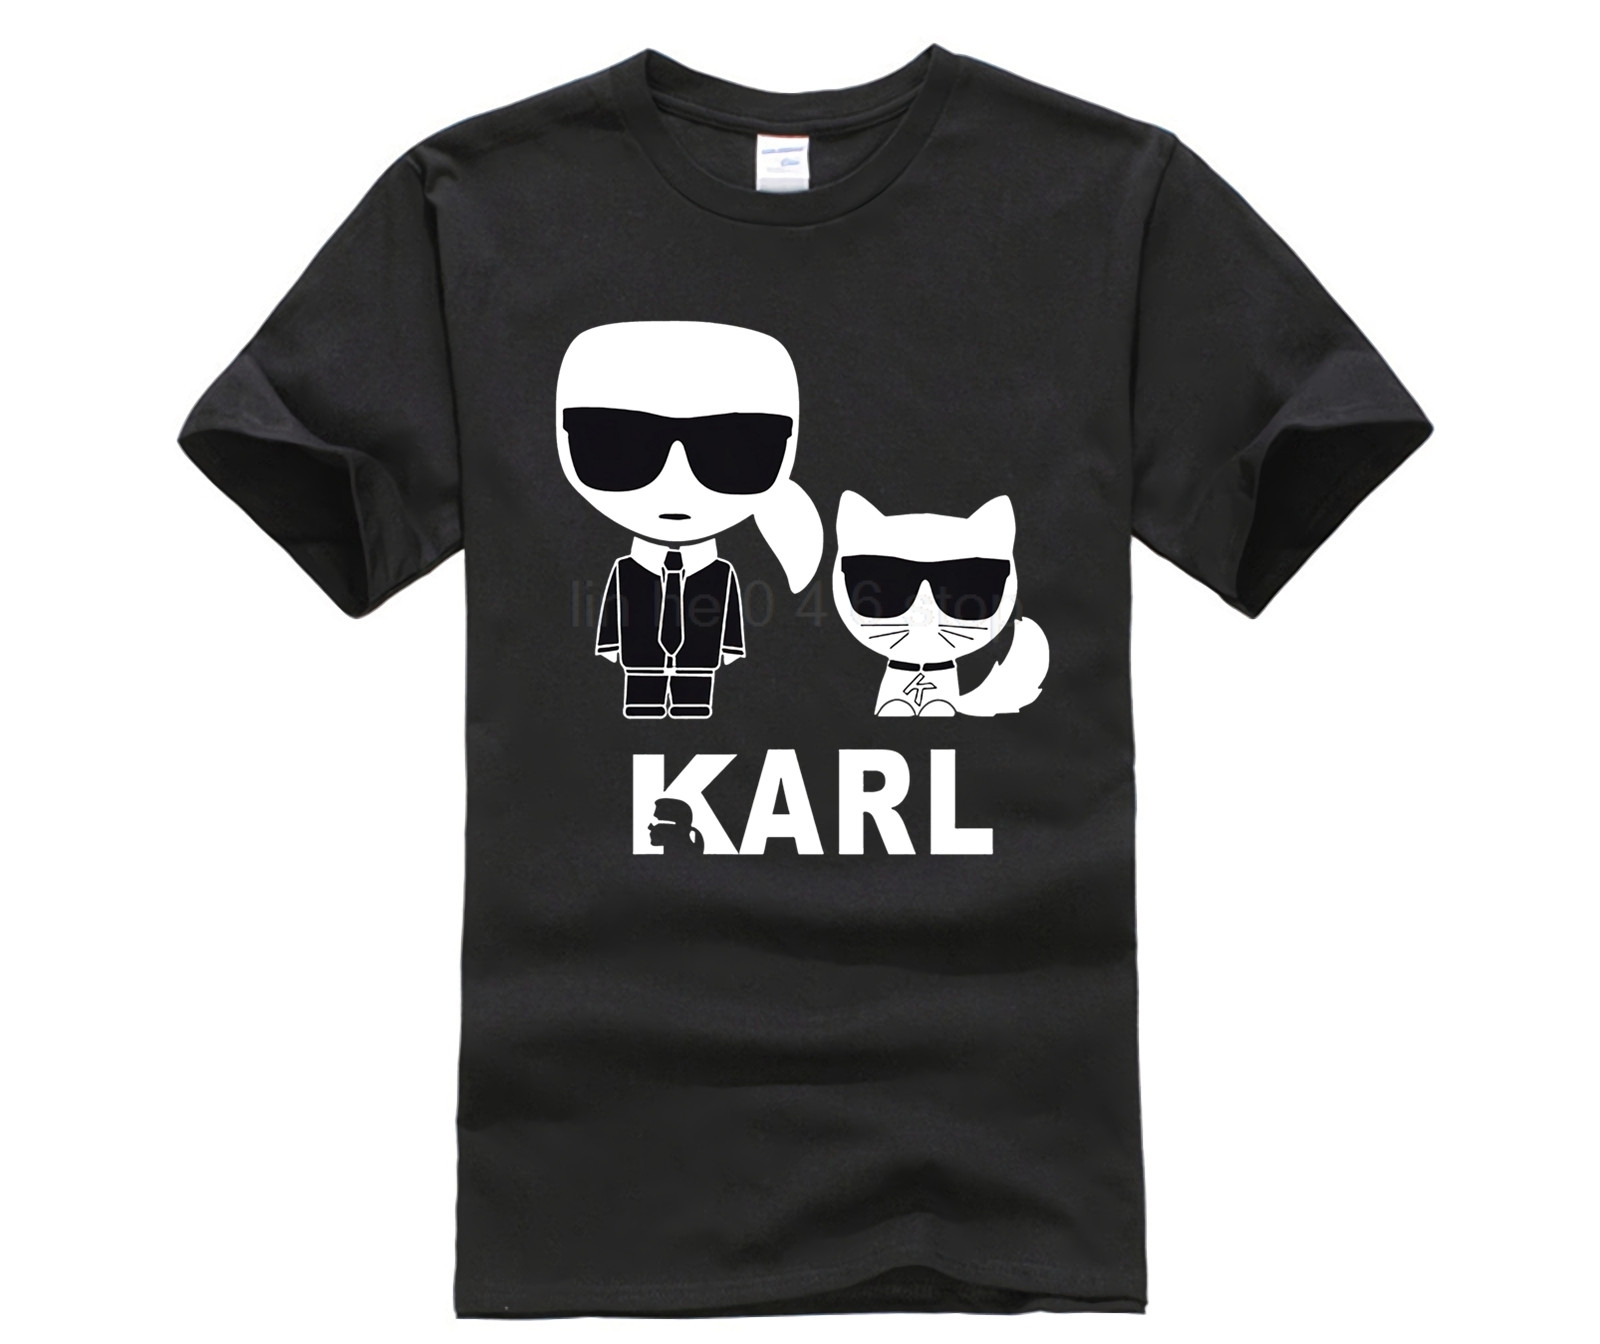 2019 Karl Lagerfeld   T     shirt   Men Hot sale Summer tshirt New Print Karl Lagerfeld   t  -  shirts   Men's Fashion